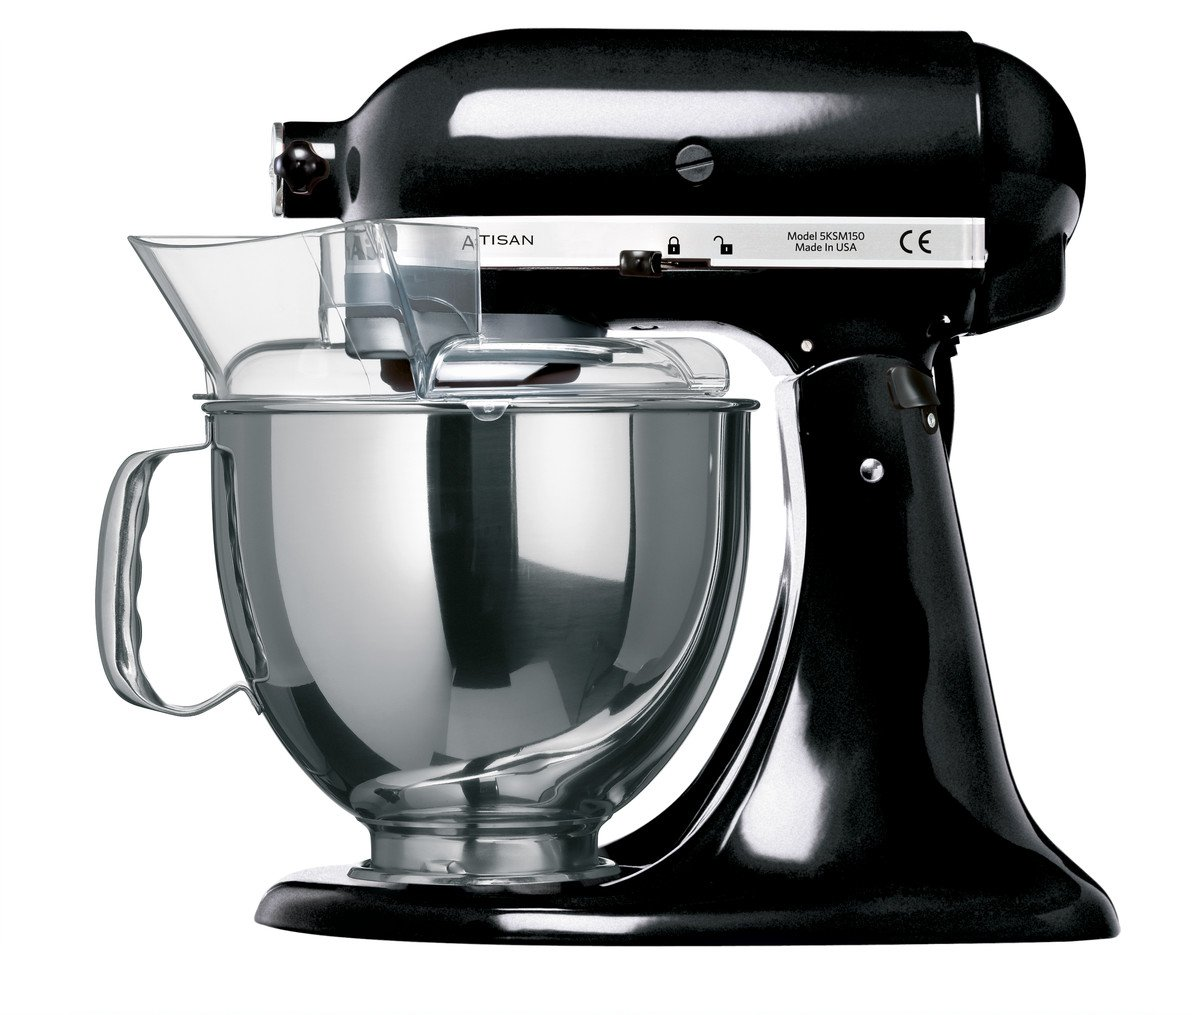 KitchenAid Artisan KSM150BOB Stand Mixer Black: Amazon.co.uk: Kitchen U0026 Home